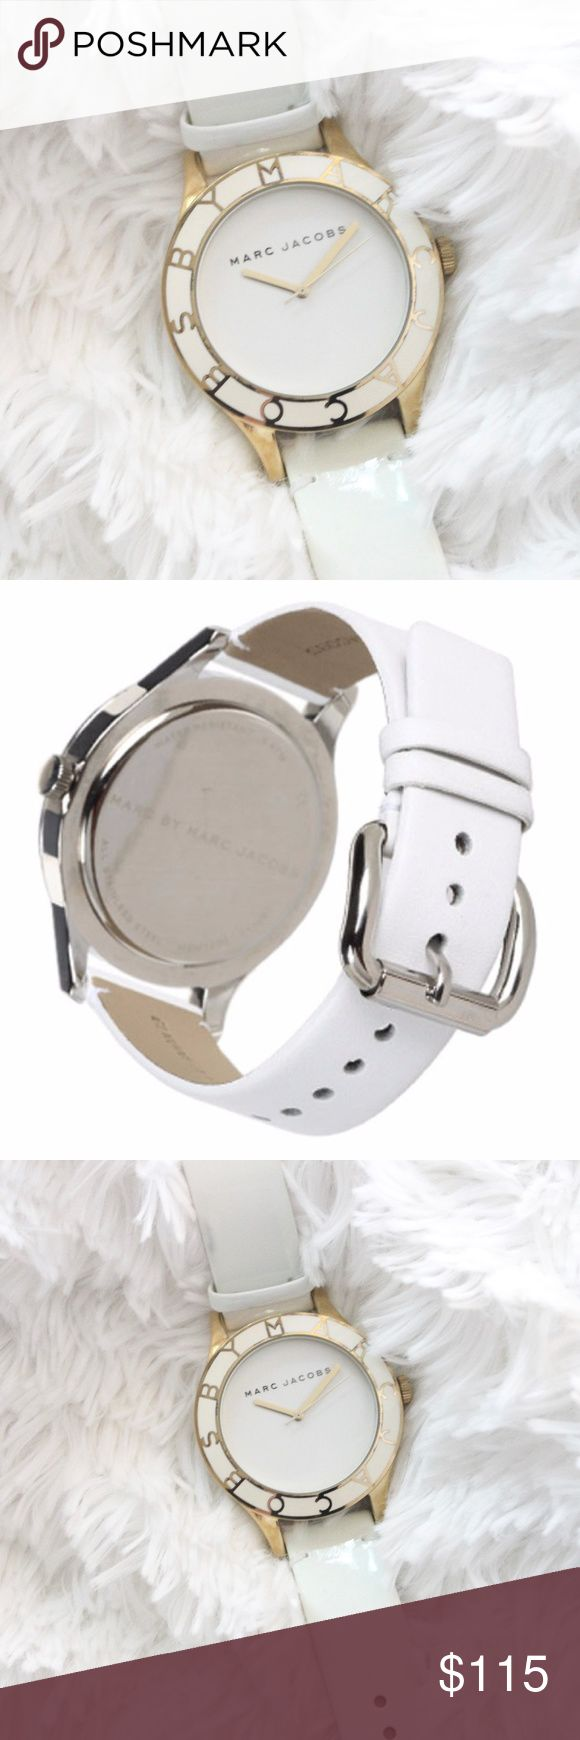 """Marc Jacobs Blade White Patent Leather Logo Watch In excellent gently used condition!   """"This Blade Mini Gold White Patent Watch is both simple and sophisticated. The patent leather white strap really pops against the gold accents. The case measures 26 mm with a thickness of 9 mm. The band is 11..9 mm wide closes with an adjustable buckle closure. This watch is water resistant to 5 ATM. The logo top ring is etched with gold-toned etching and backed with a stainless steel back.   Patent…"""